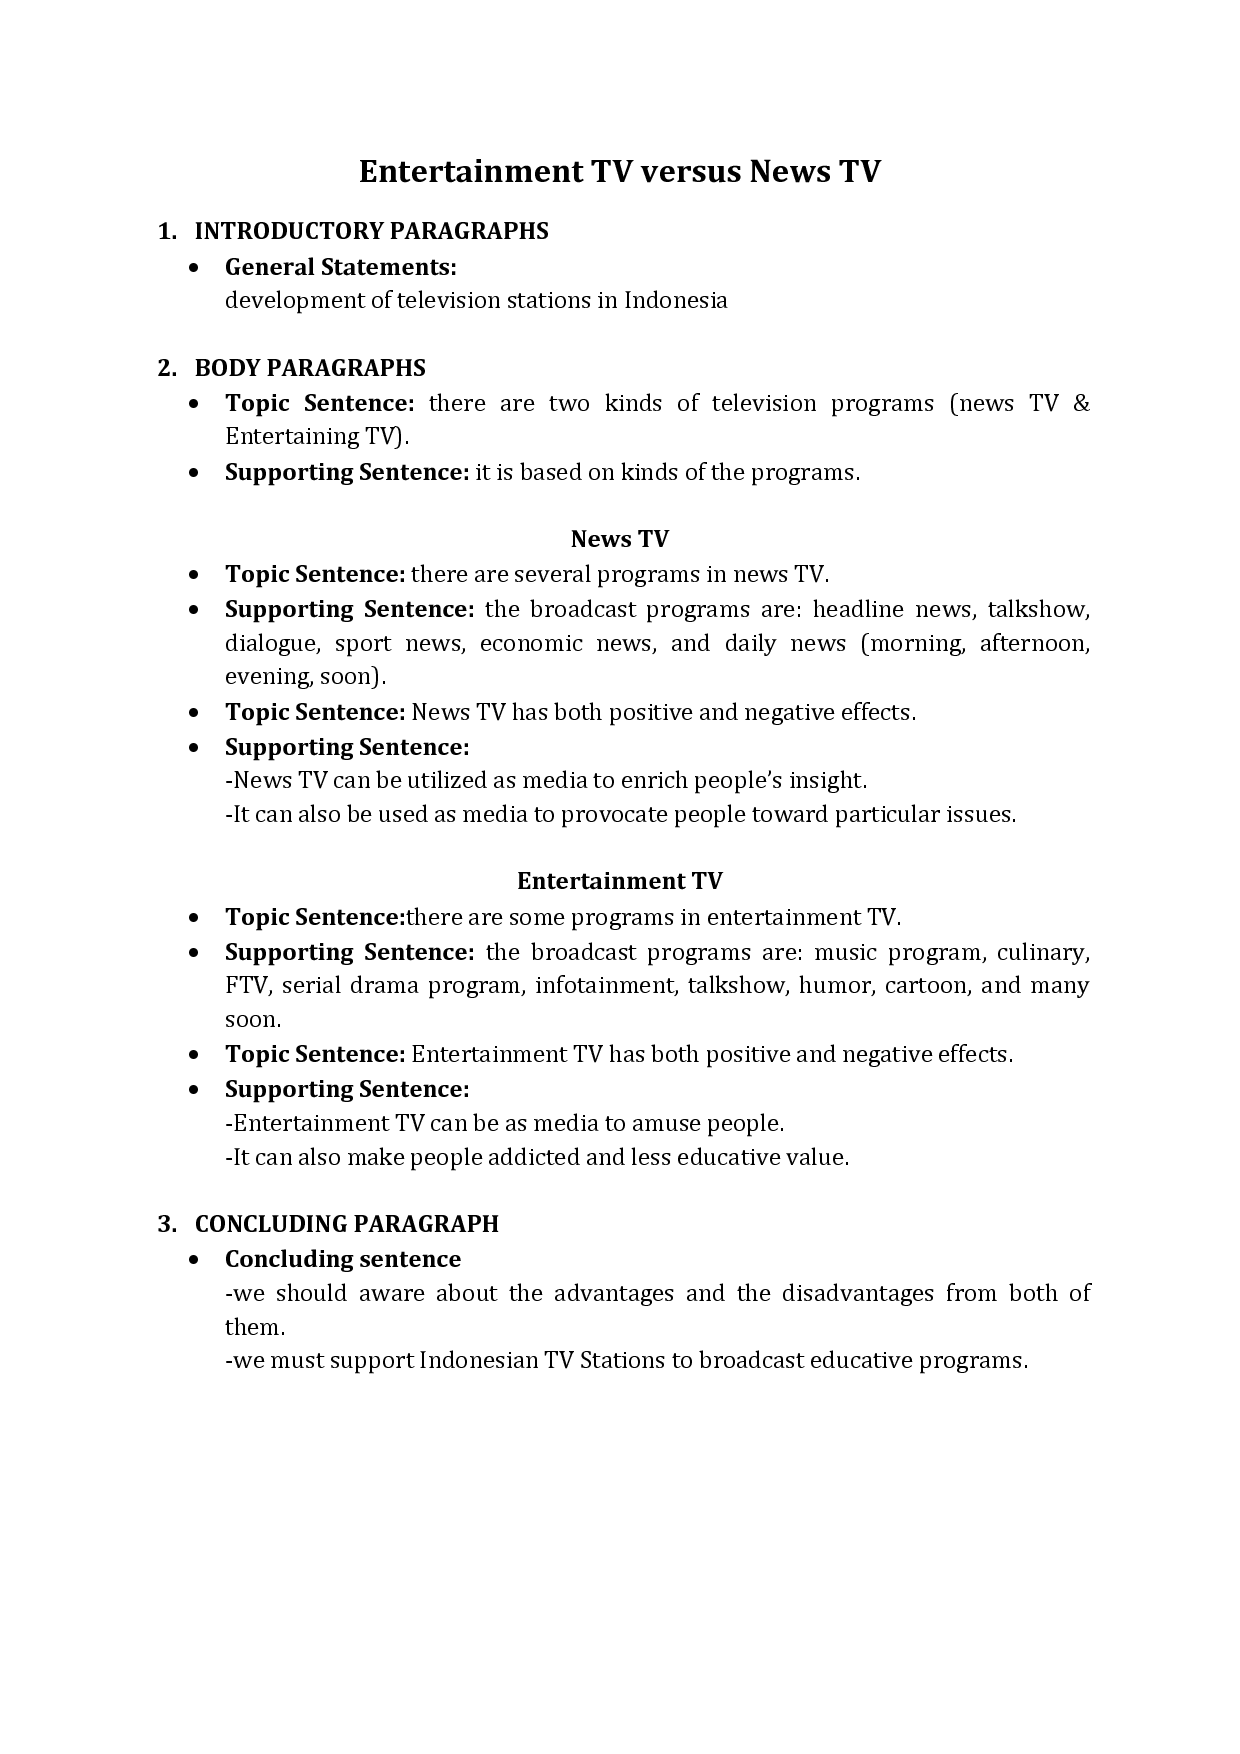 005 Fbunmxinib How To Write An Essay Outline Excellent For University 6th Grade Full